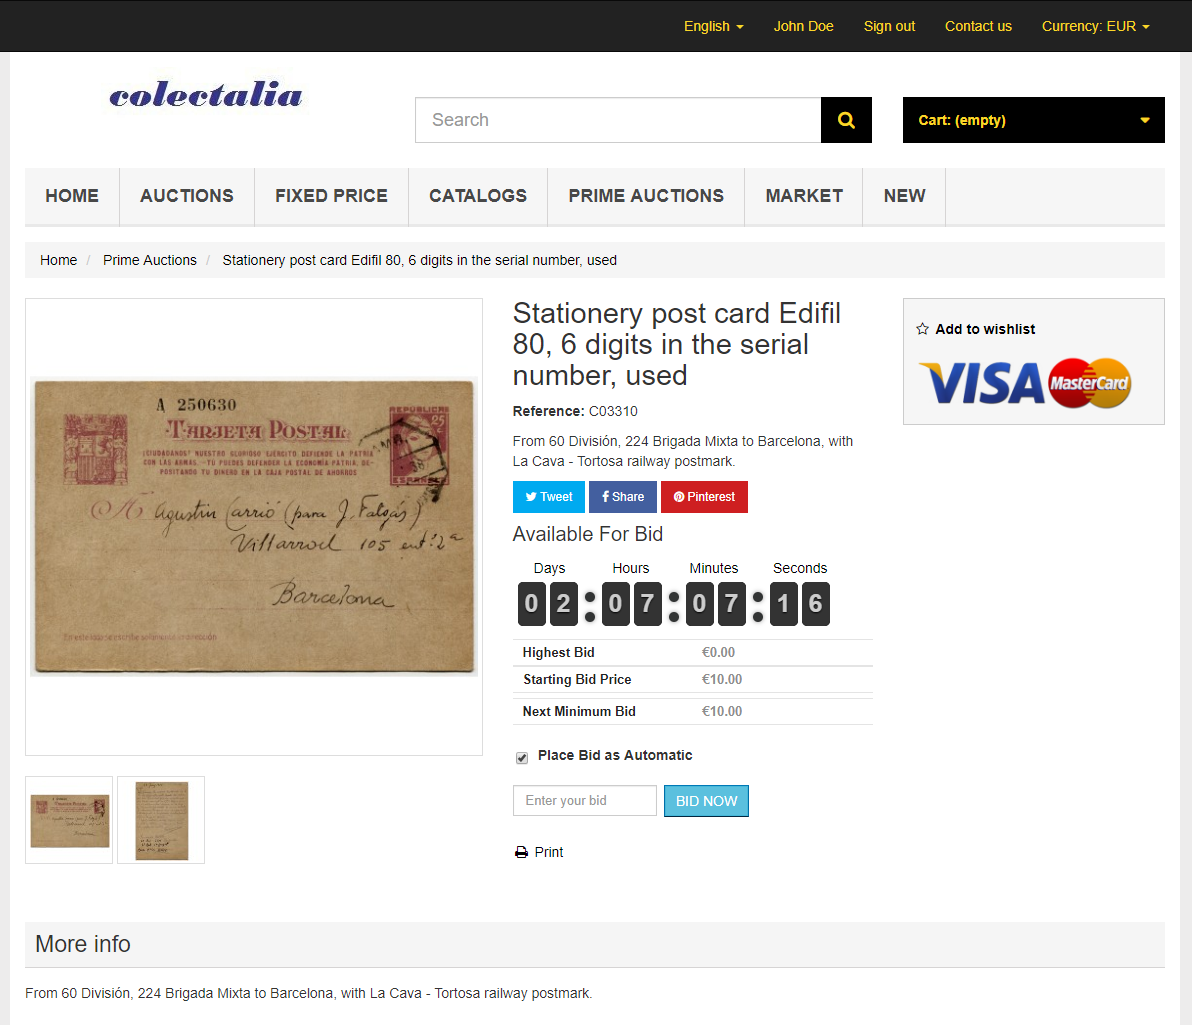 colectalia-en-prime-auctions-stationery-post-card